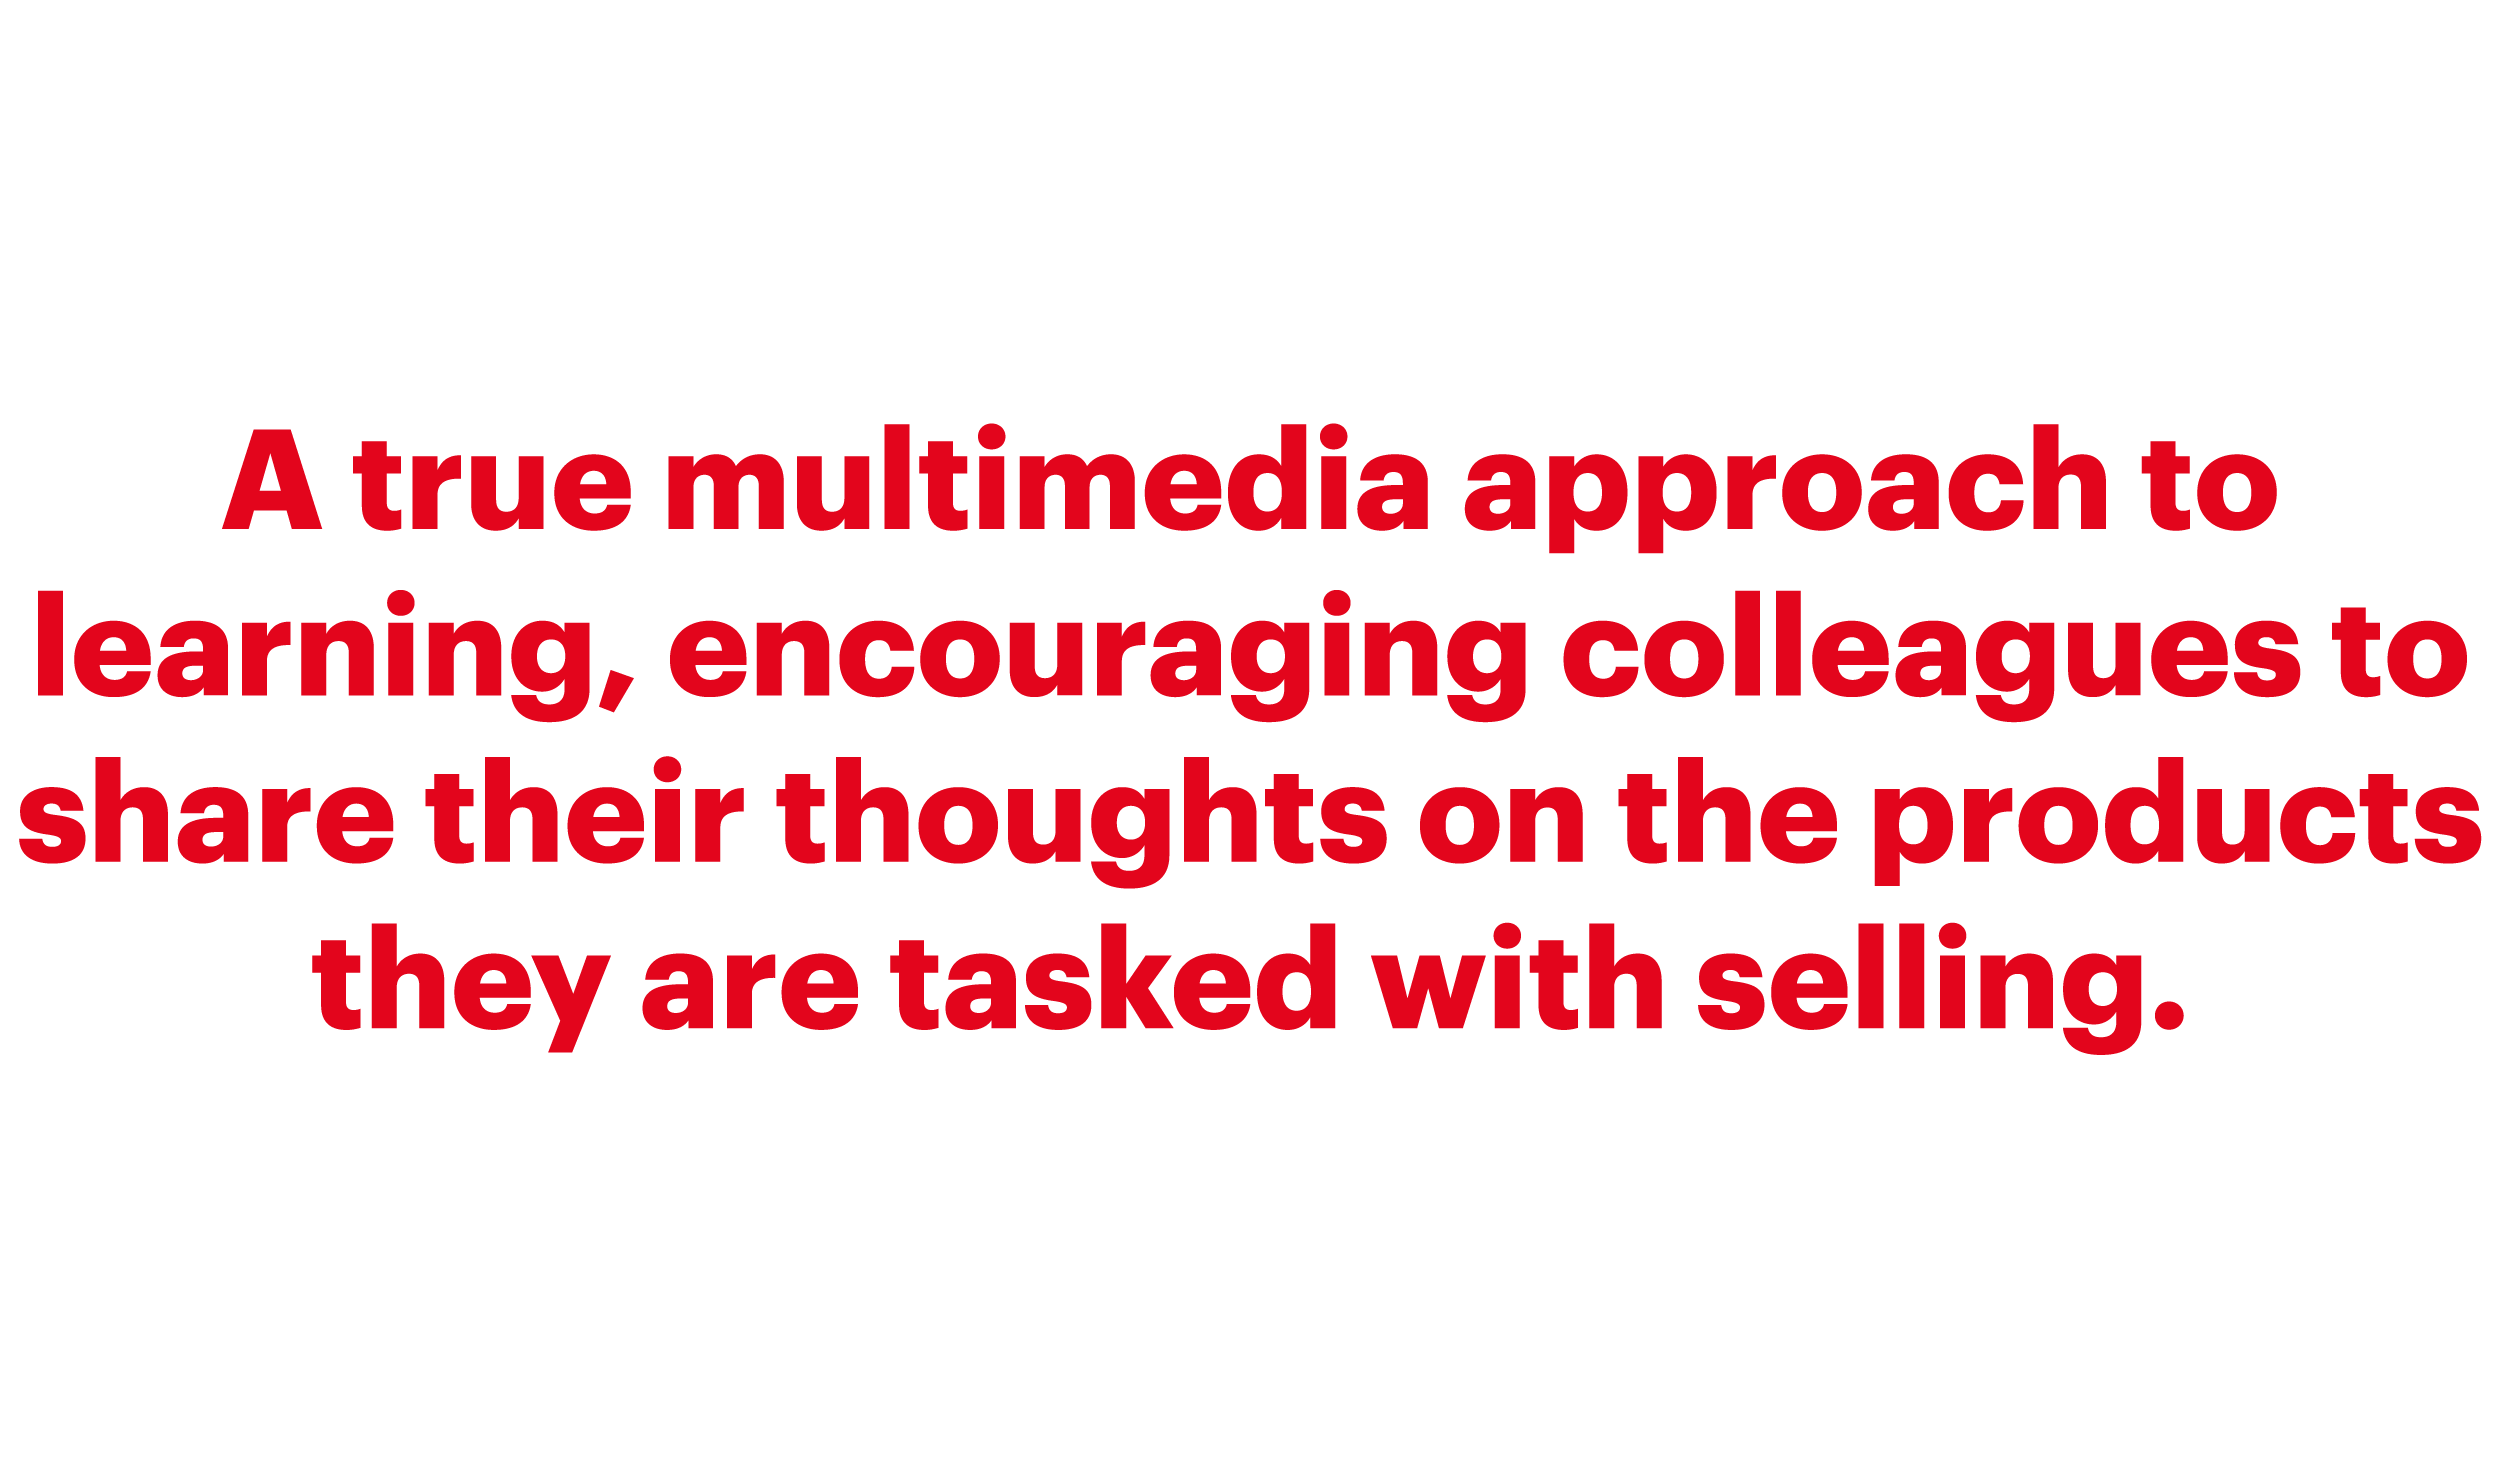 A true multimedia approach to learning, encouraging colleagues to share their thoughts on the products they are tasked with selling.png